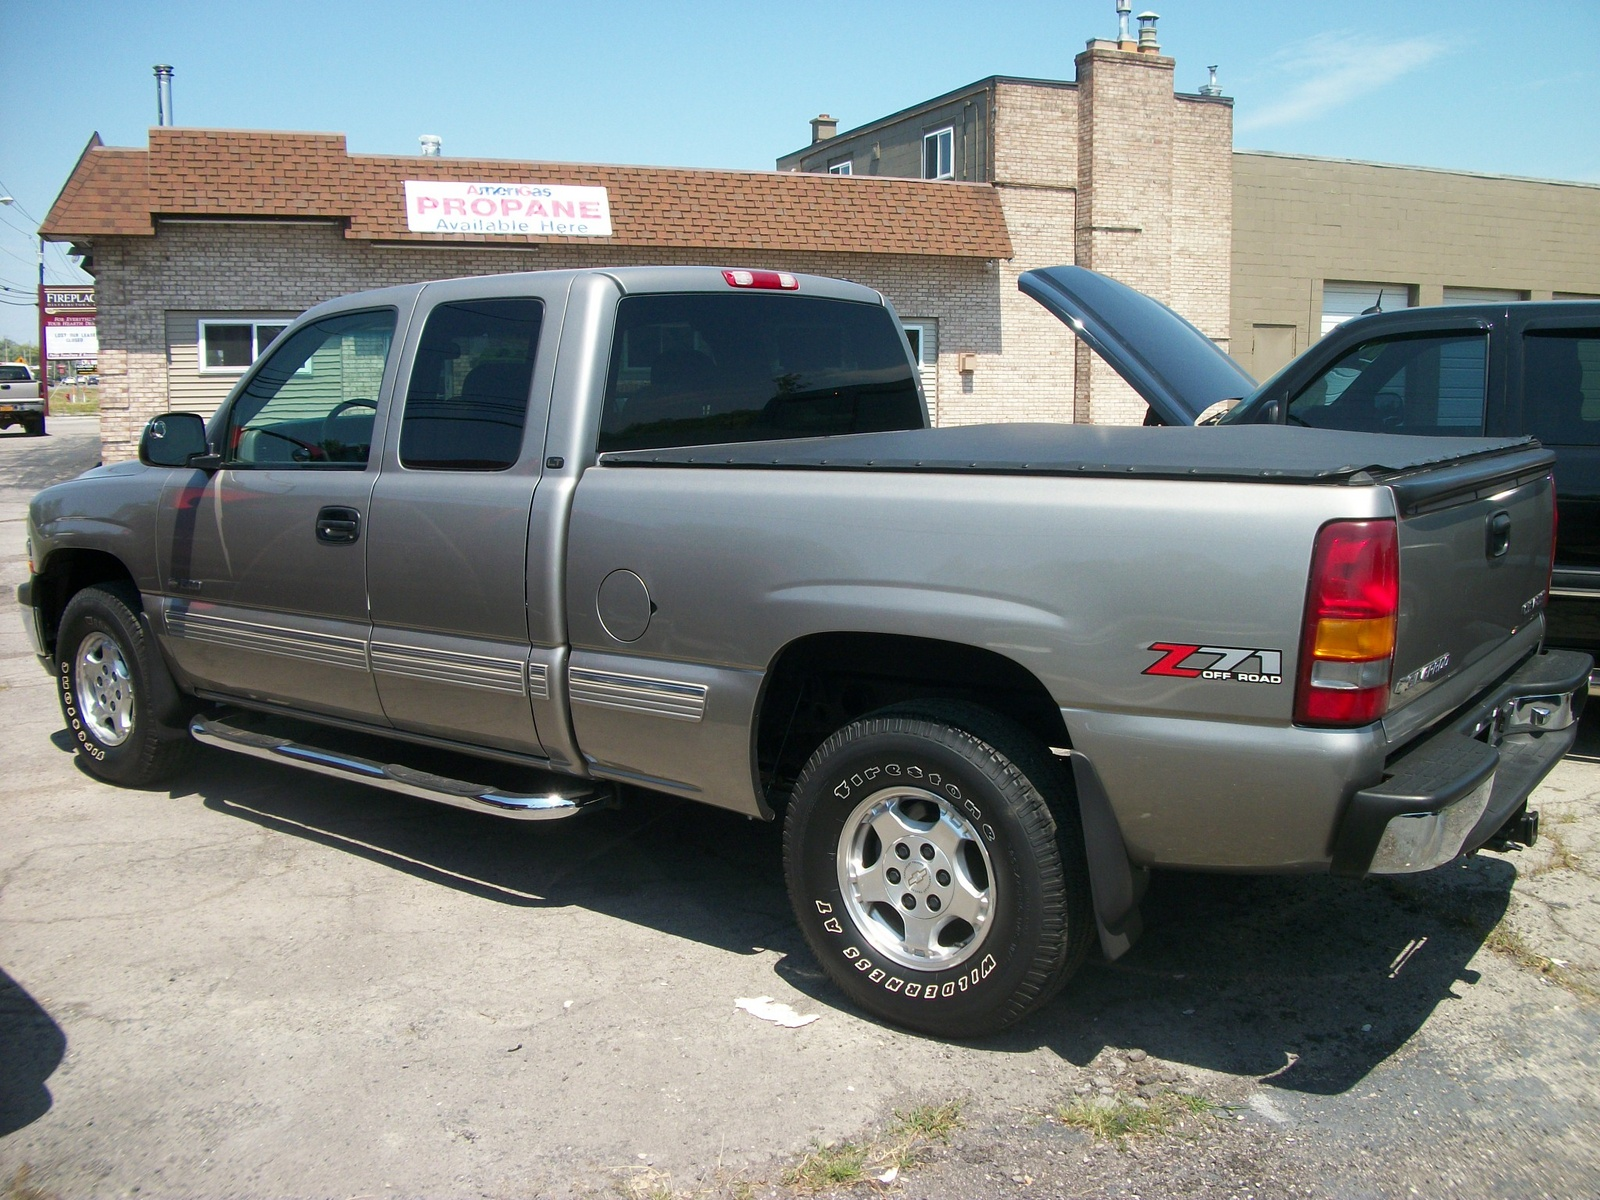 2001 chevrolet silverado 1500 extended cab lt 4wd specs html autos weblog. Black Bedroom Furniture Sets. Home Design Ideas